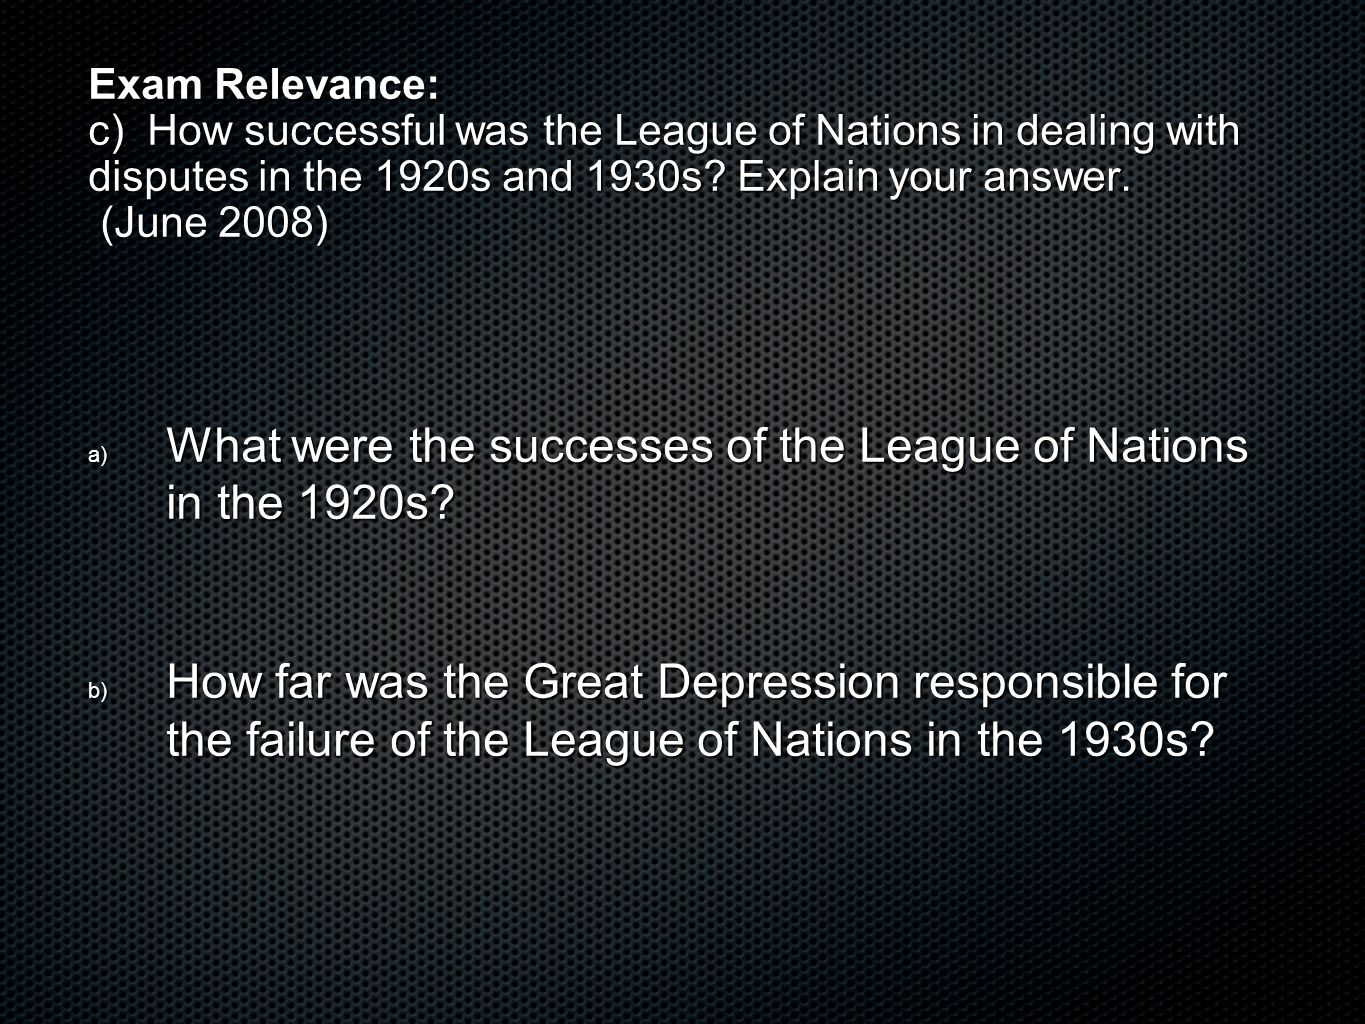 What were the successes of the League of Nations in the 1920s